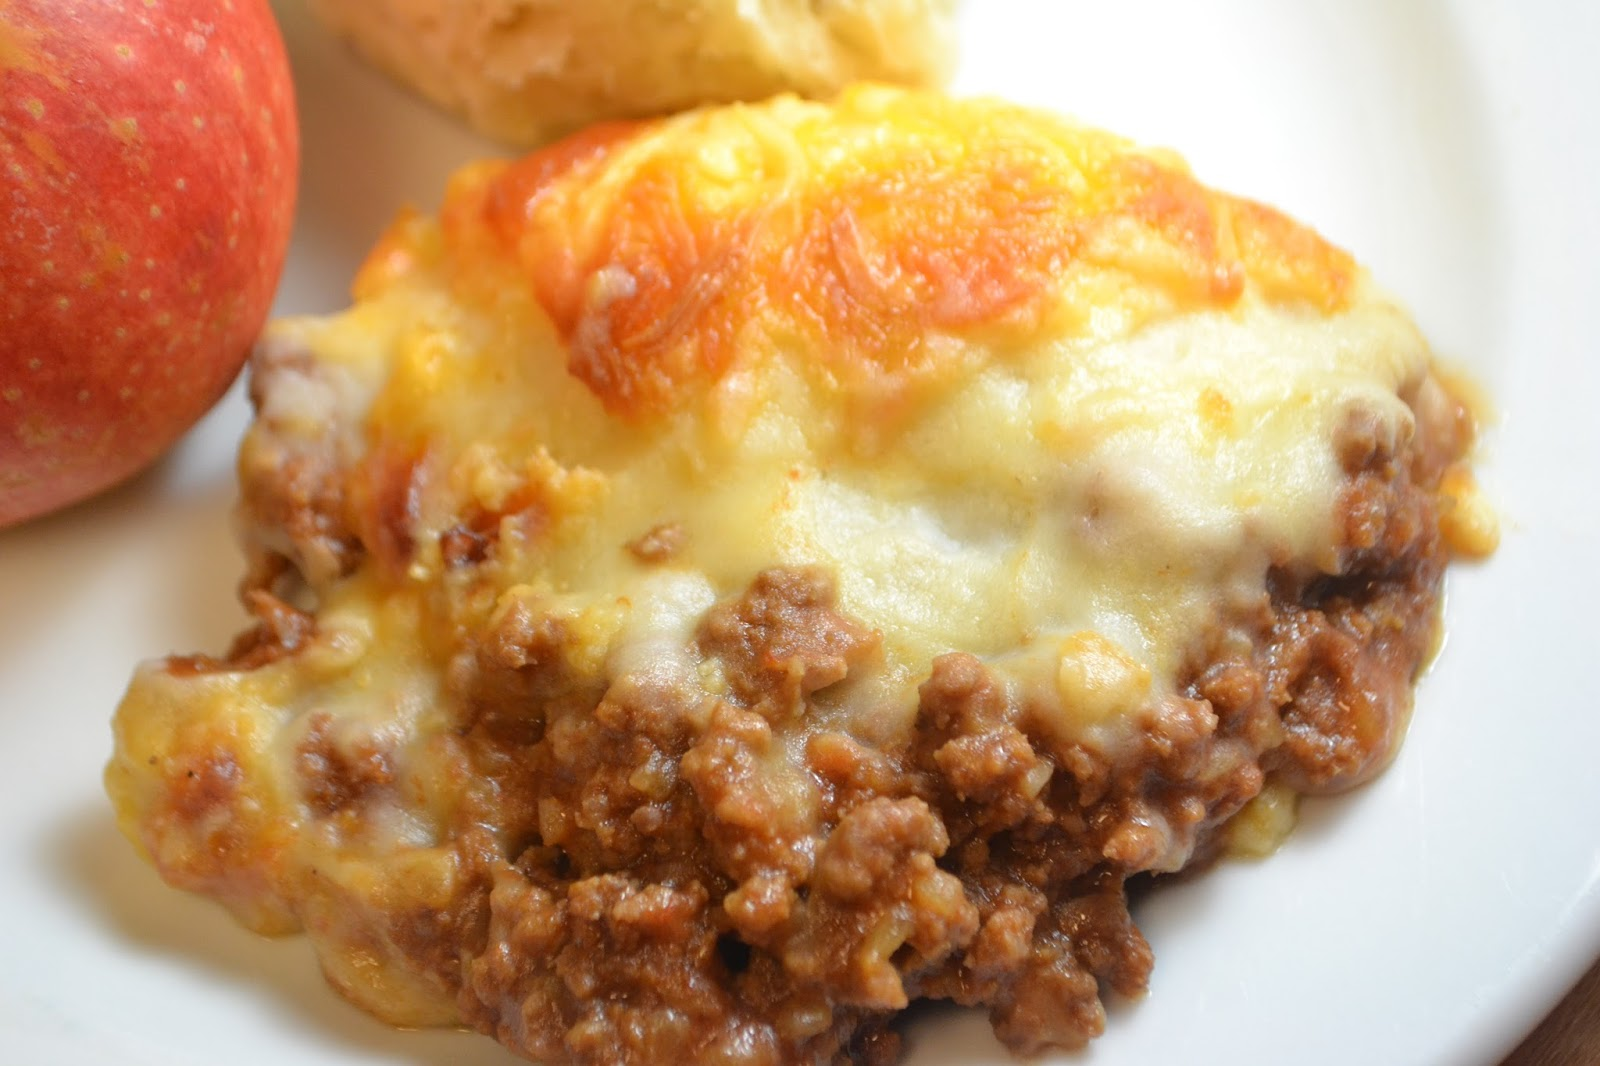 Tip garden grams sloppy joe skillet supper it certainly had a lifelong impact on her cooking she could whip up a dinner for any crowd stopping in in no time and seemingly out of nothing forumfinder Images